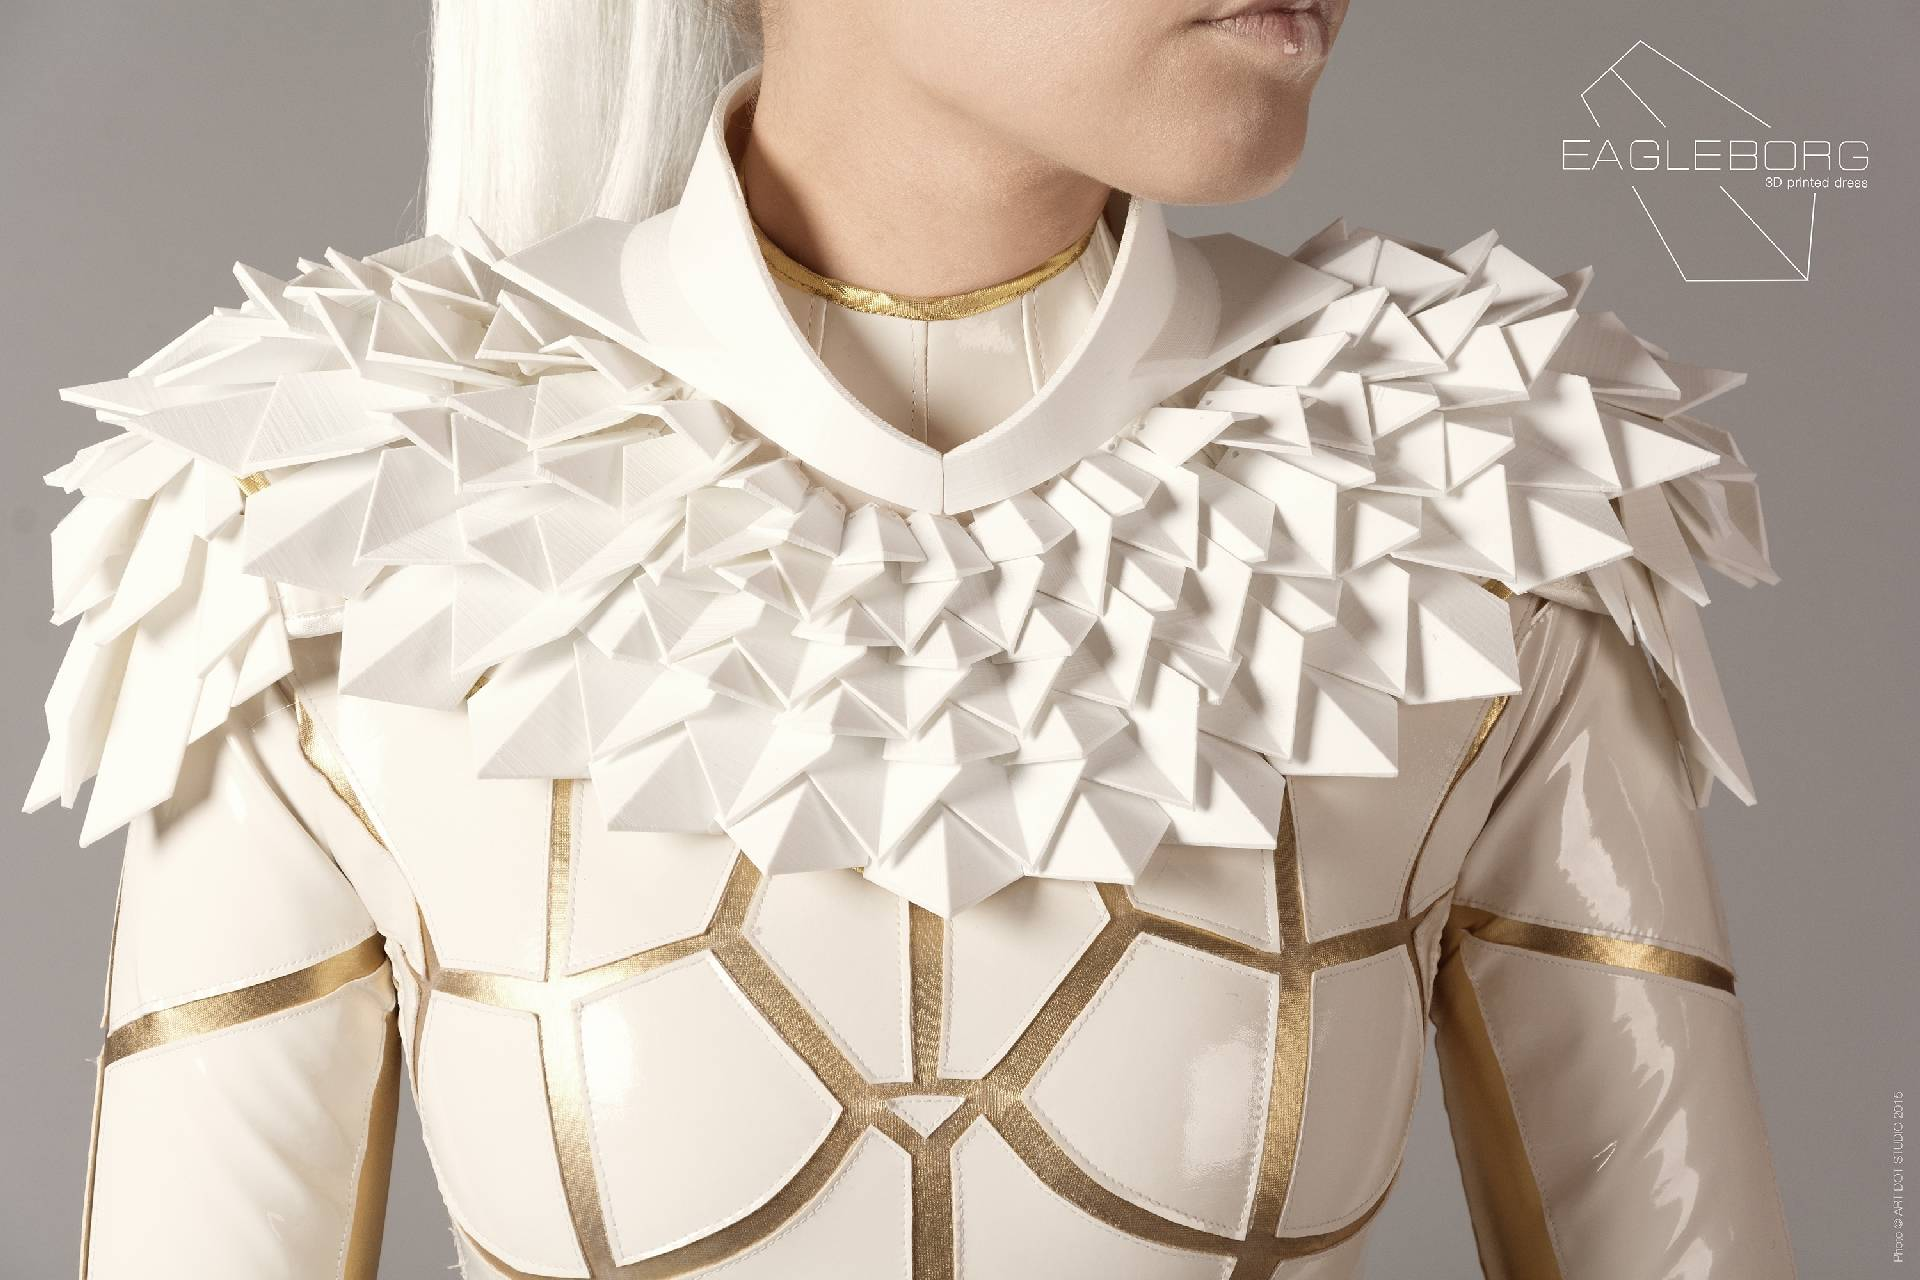 White and gold costume named Eagleborg made by laser cut leatherette and 3D printed shoulder piece by MIMO Space atelier